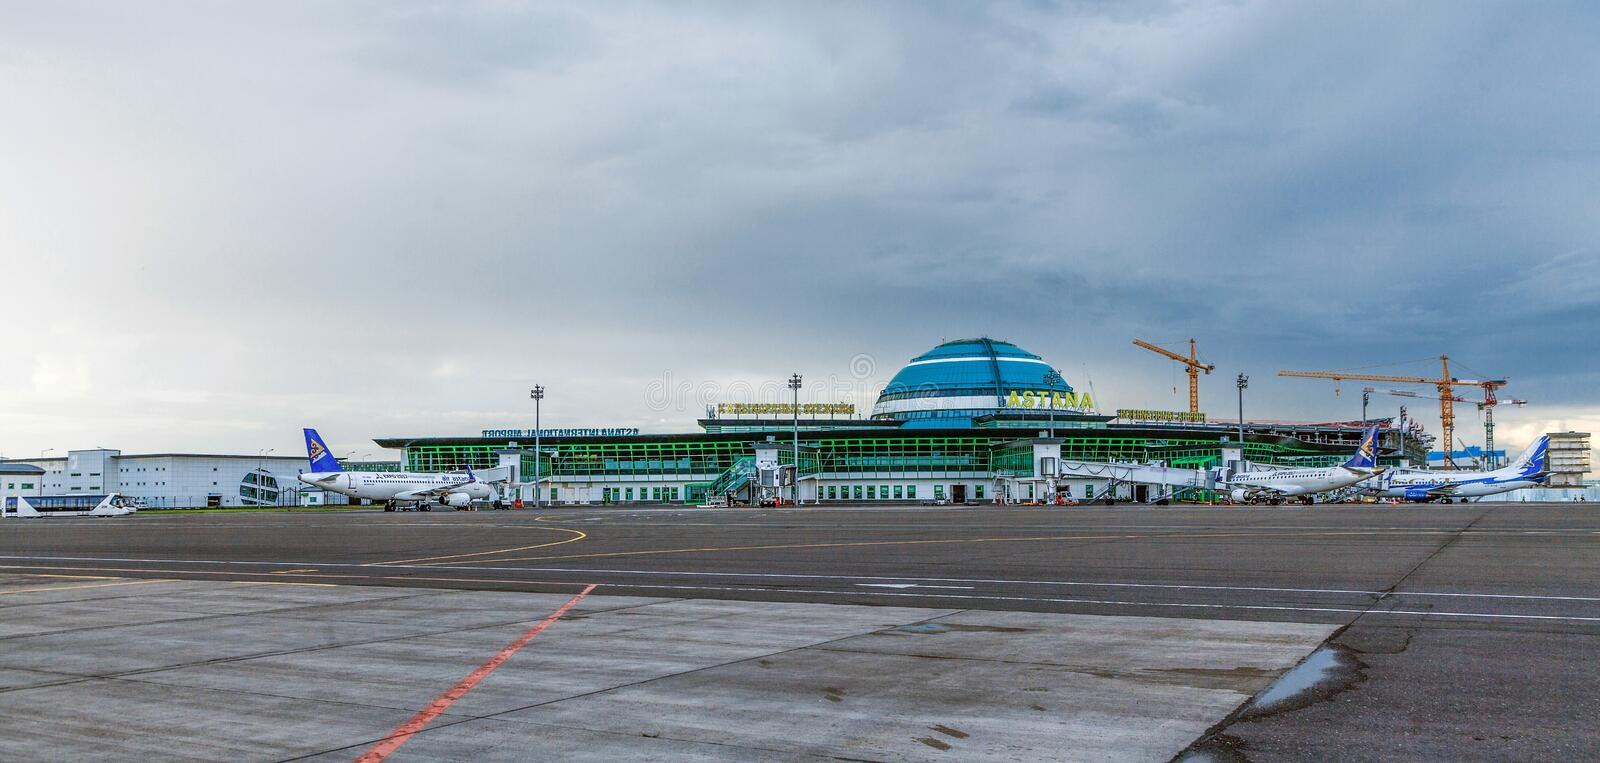 ASTANA, KAZAKHSTAN - JULY 17, 2016: Planes at the International Airport stock images